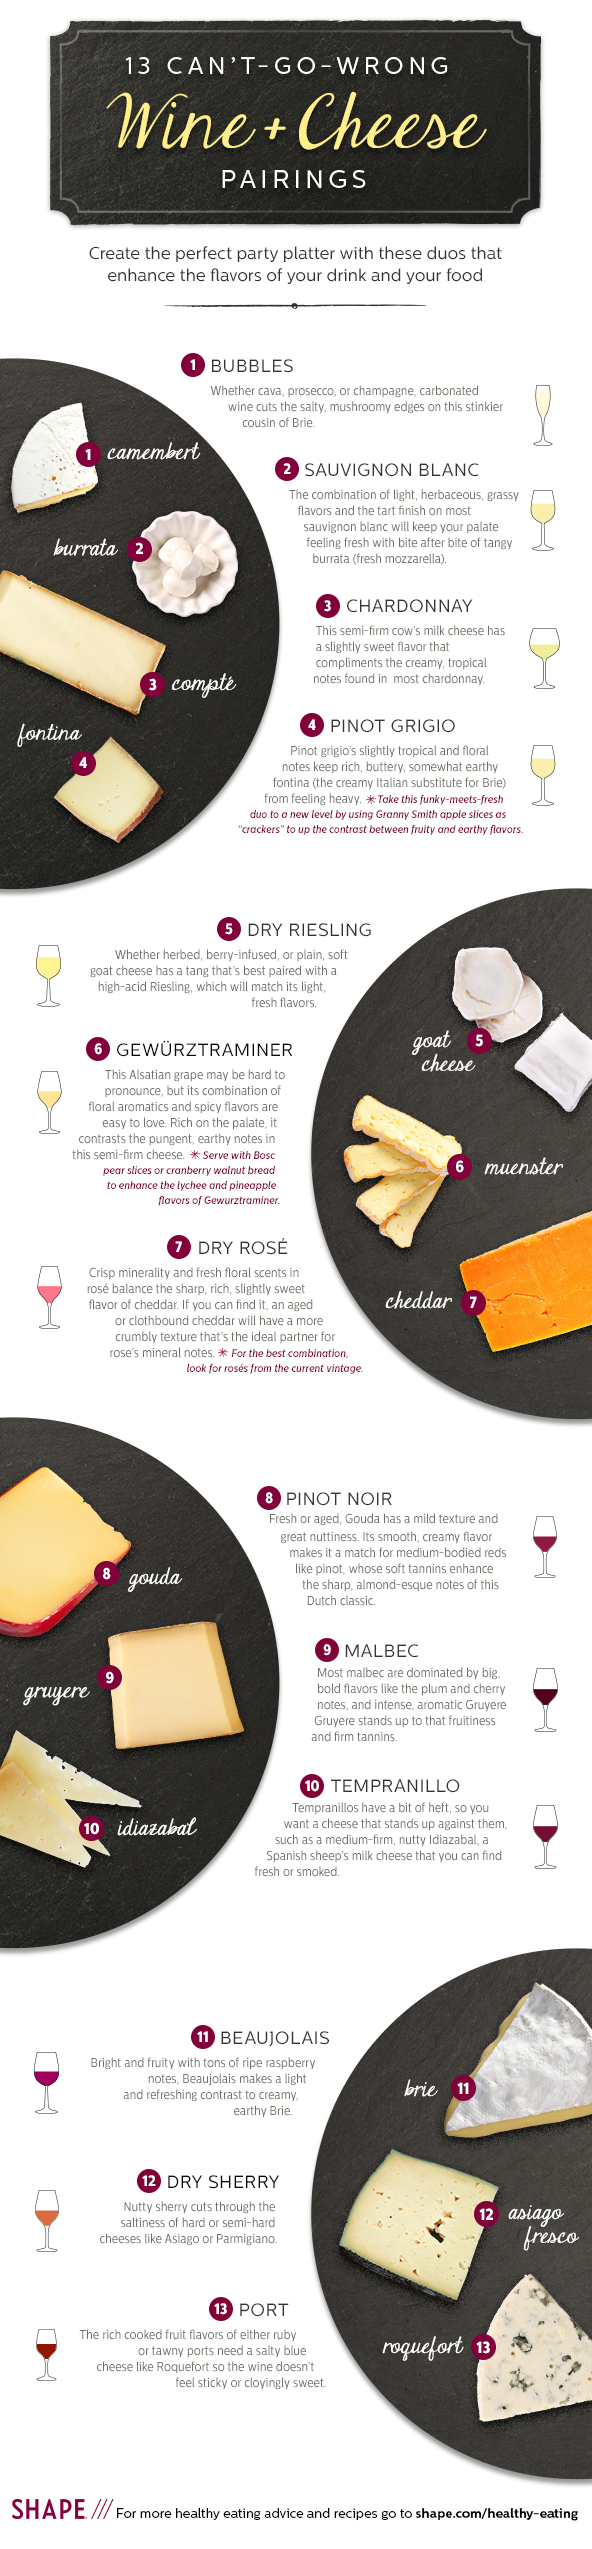 13 Can't-Go-Wrong Wine and Cheese Pairings